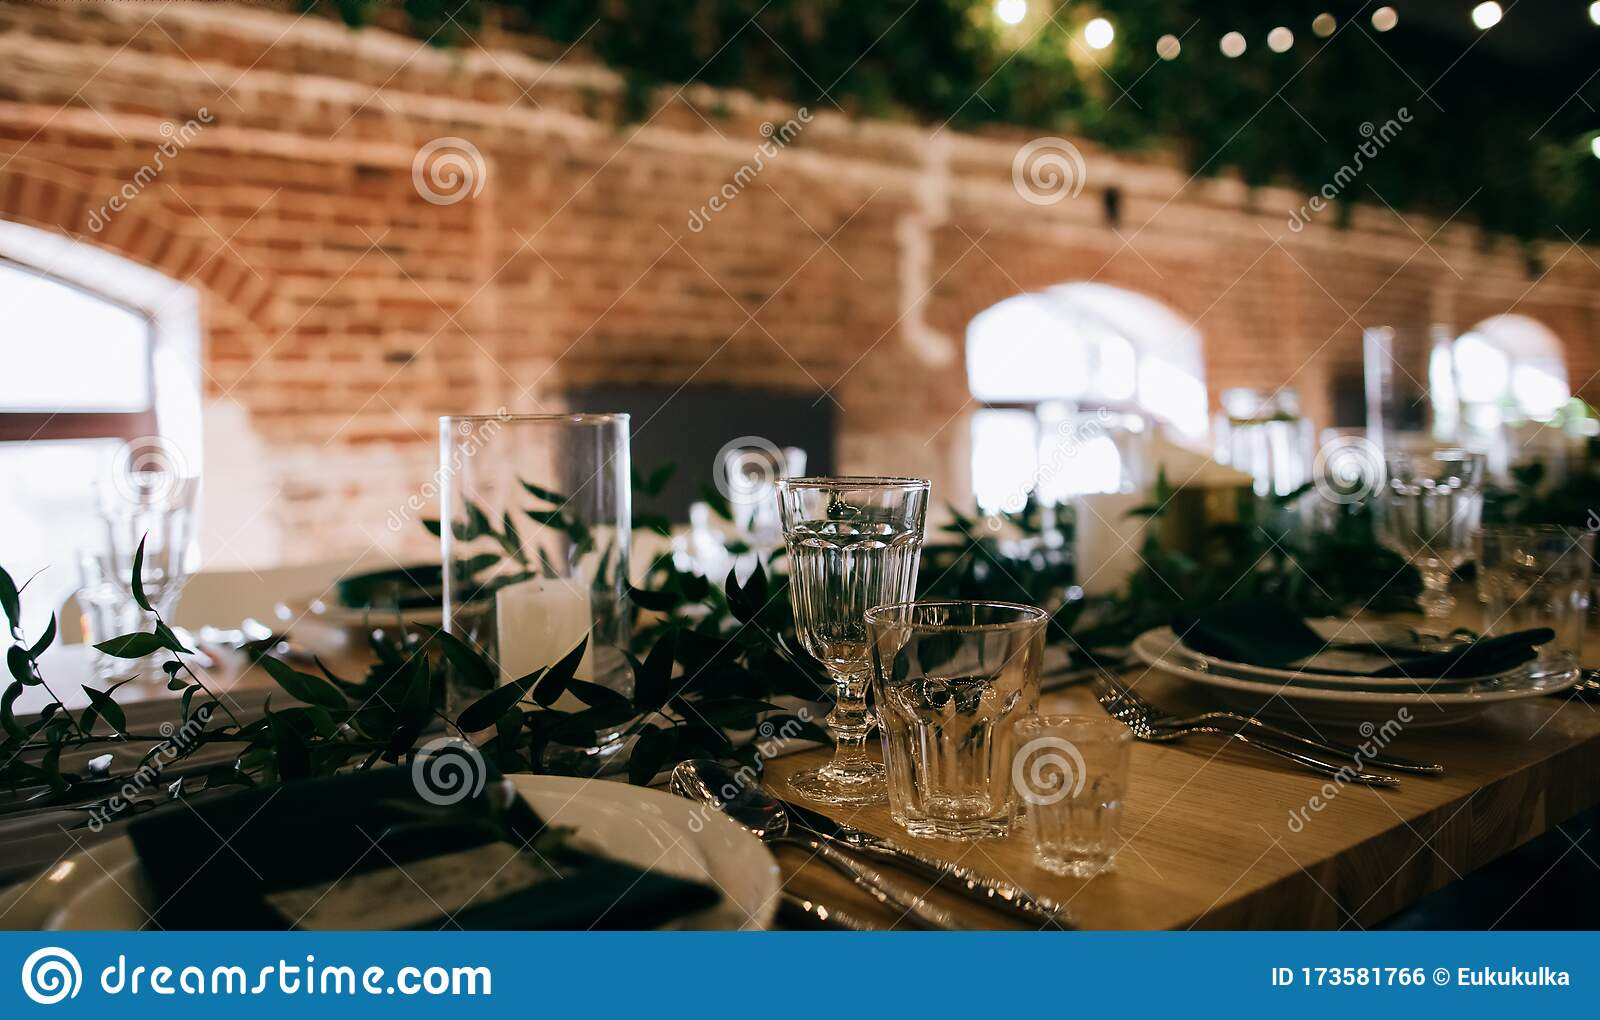 Rustic Wedding Table Decor For Restaurant Dinner Table Set Stock Photo Image Of Drink Rustic 173581766